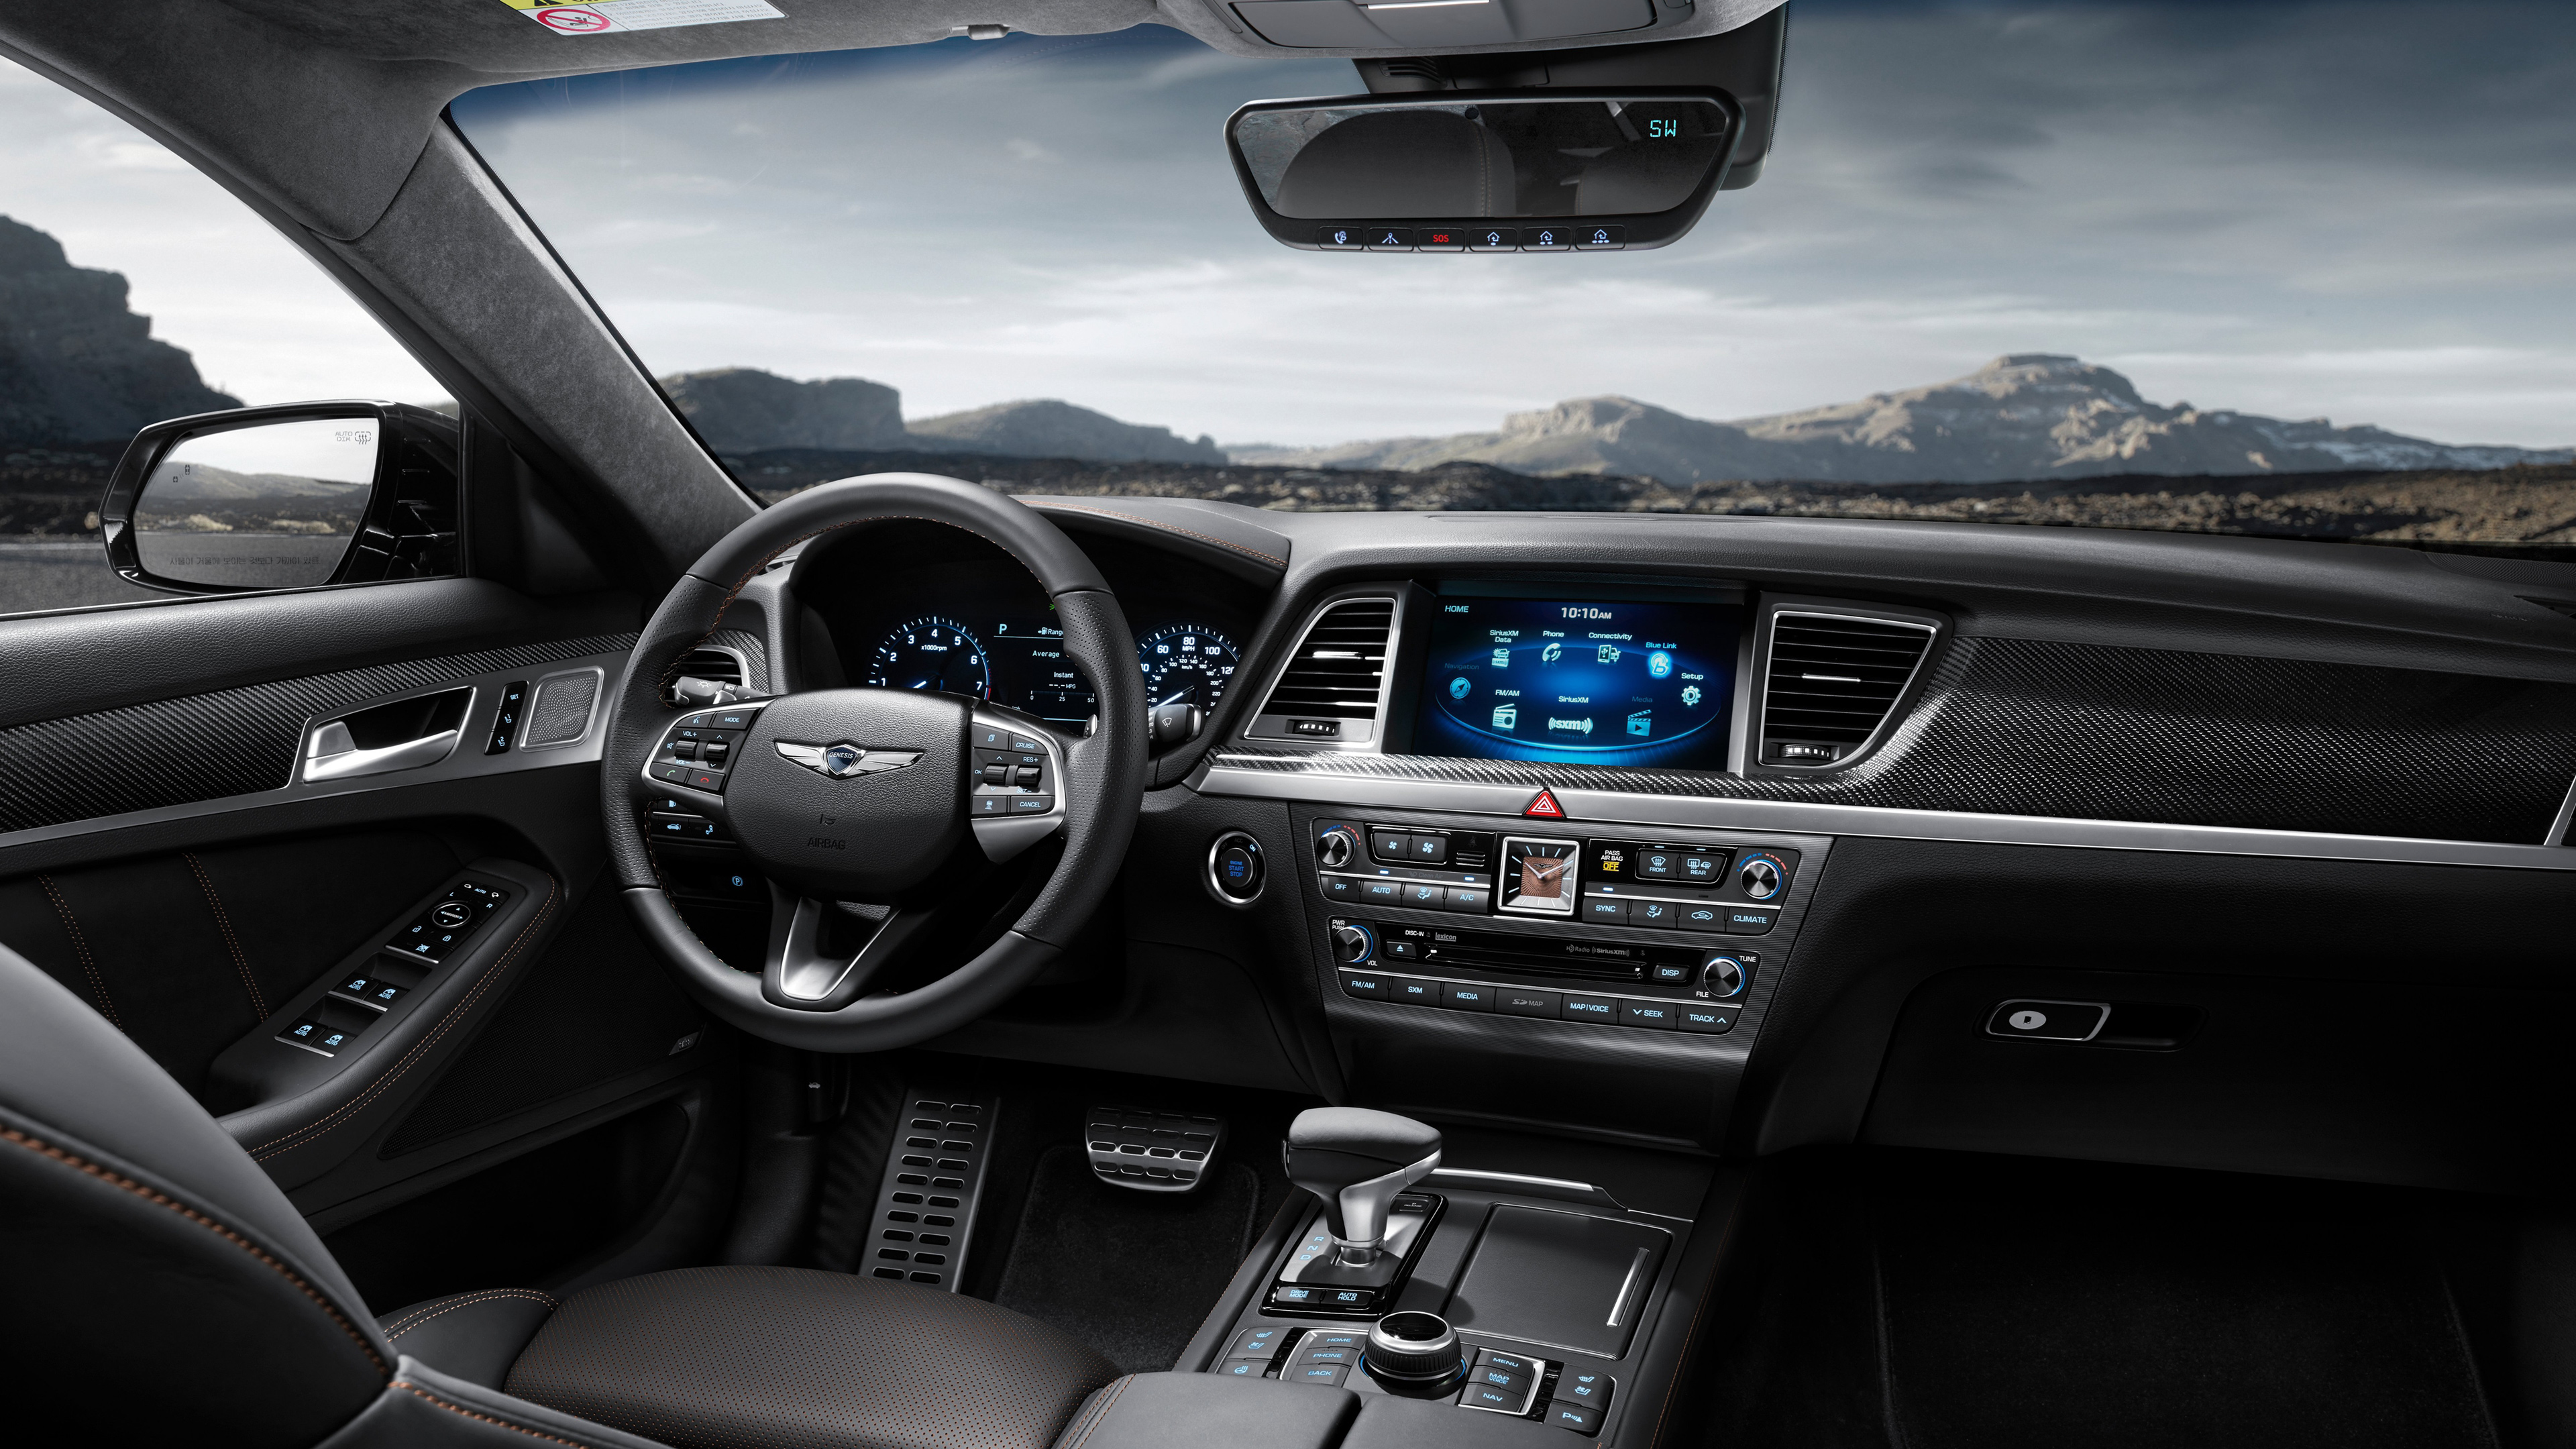 2018 Genesis G80 Sport Interior Wallpaper Hd Car